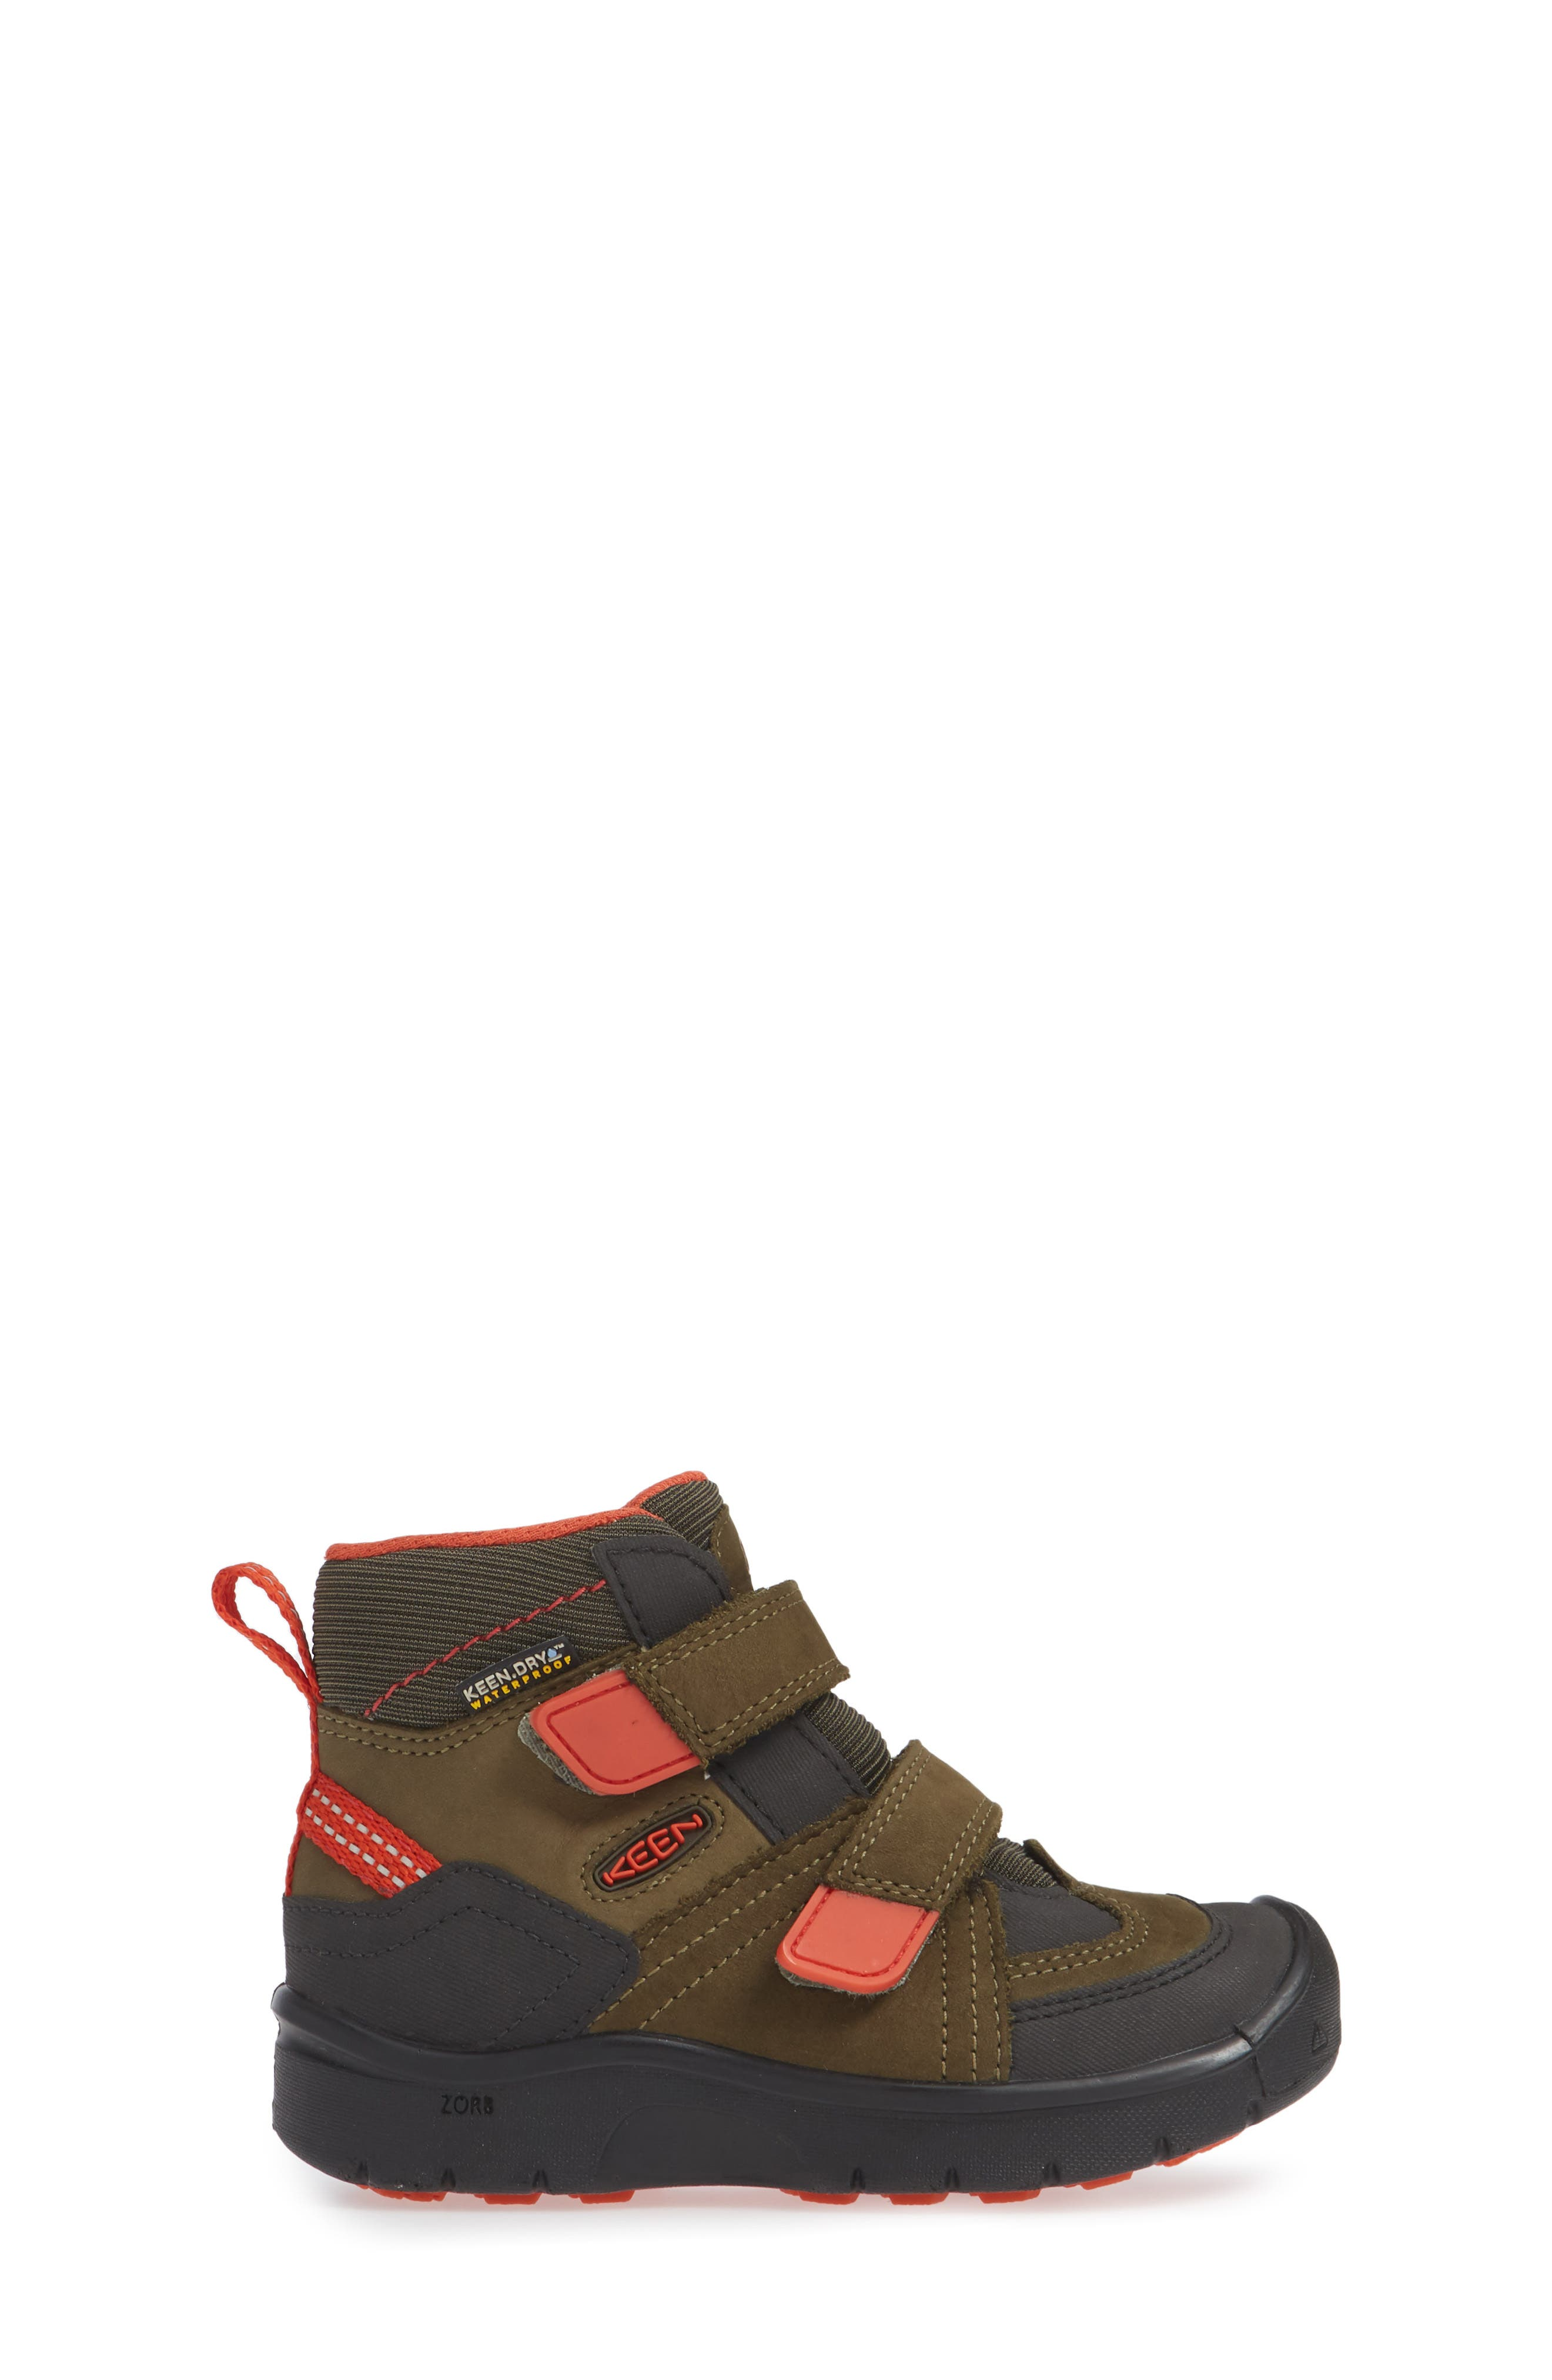 Hikeport Strap Waterproof Mid Boot,                             Alternate thumbnail 10, color,